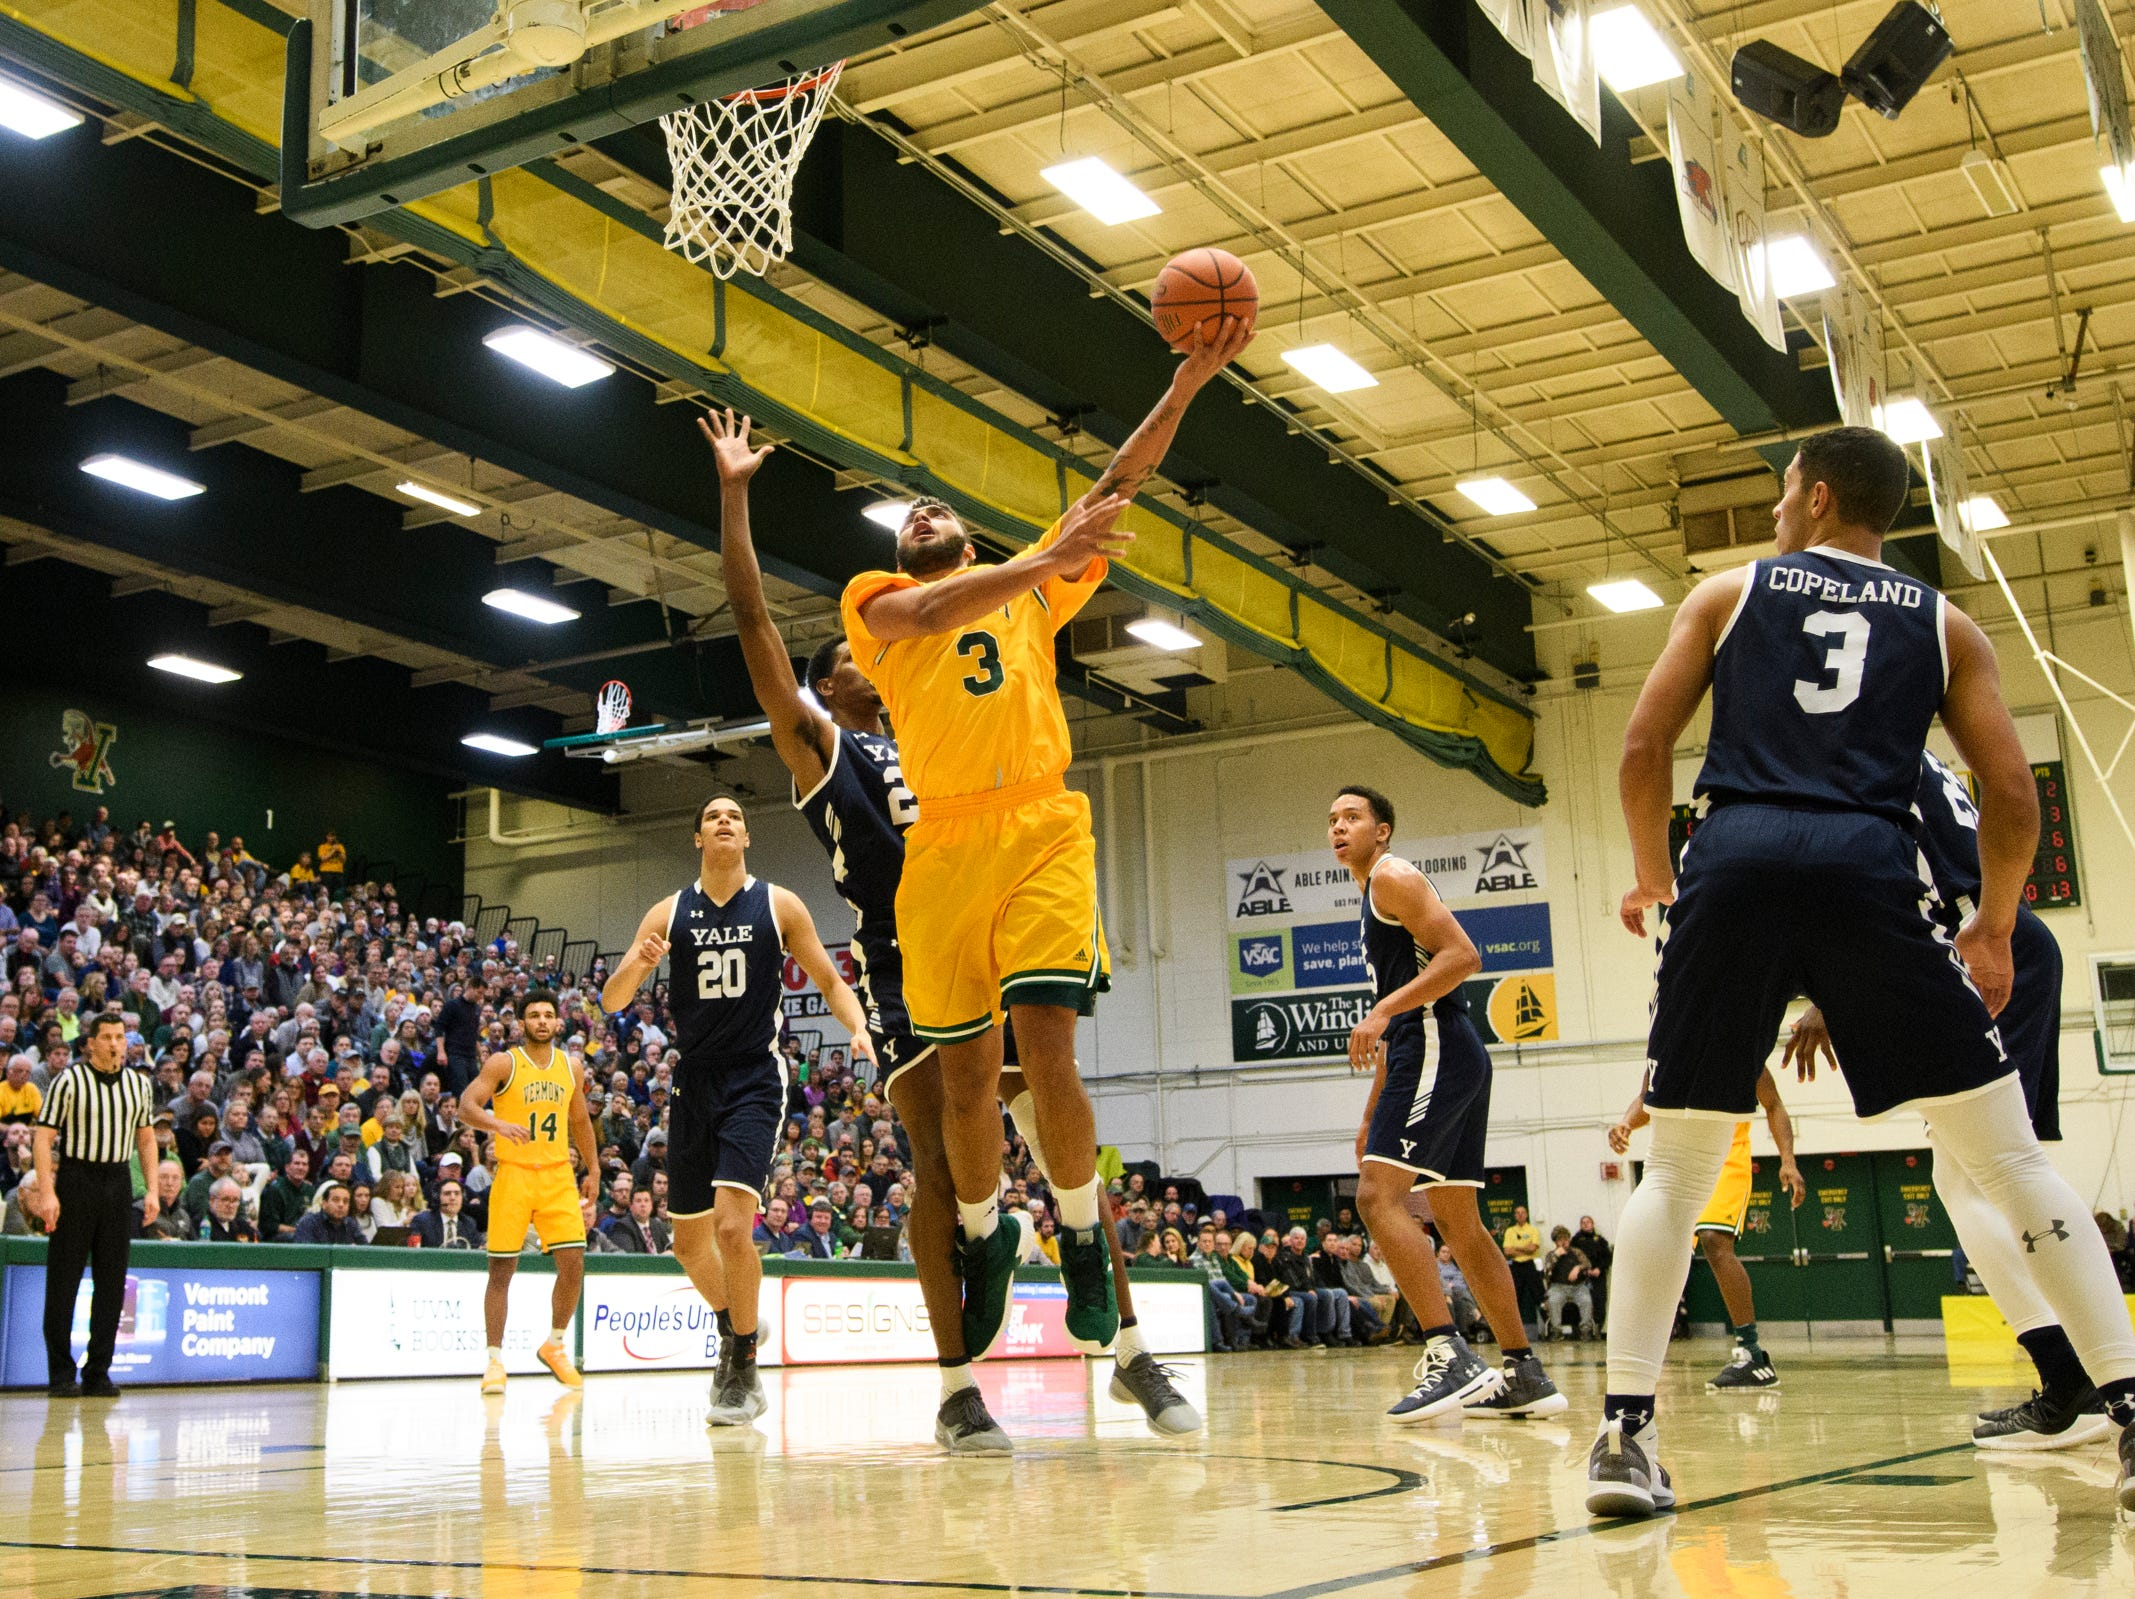 Vermont forward Anthony Lamb (3) leaps for a lay up during the men's basketball game between the Yale Bulldogs and the Vermont Catamounts at Patrick Gym on Wednesday night November 21, 2018 in Burlington.